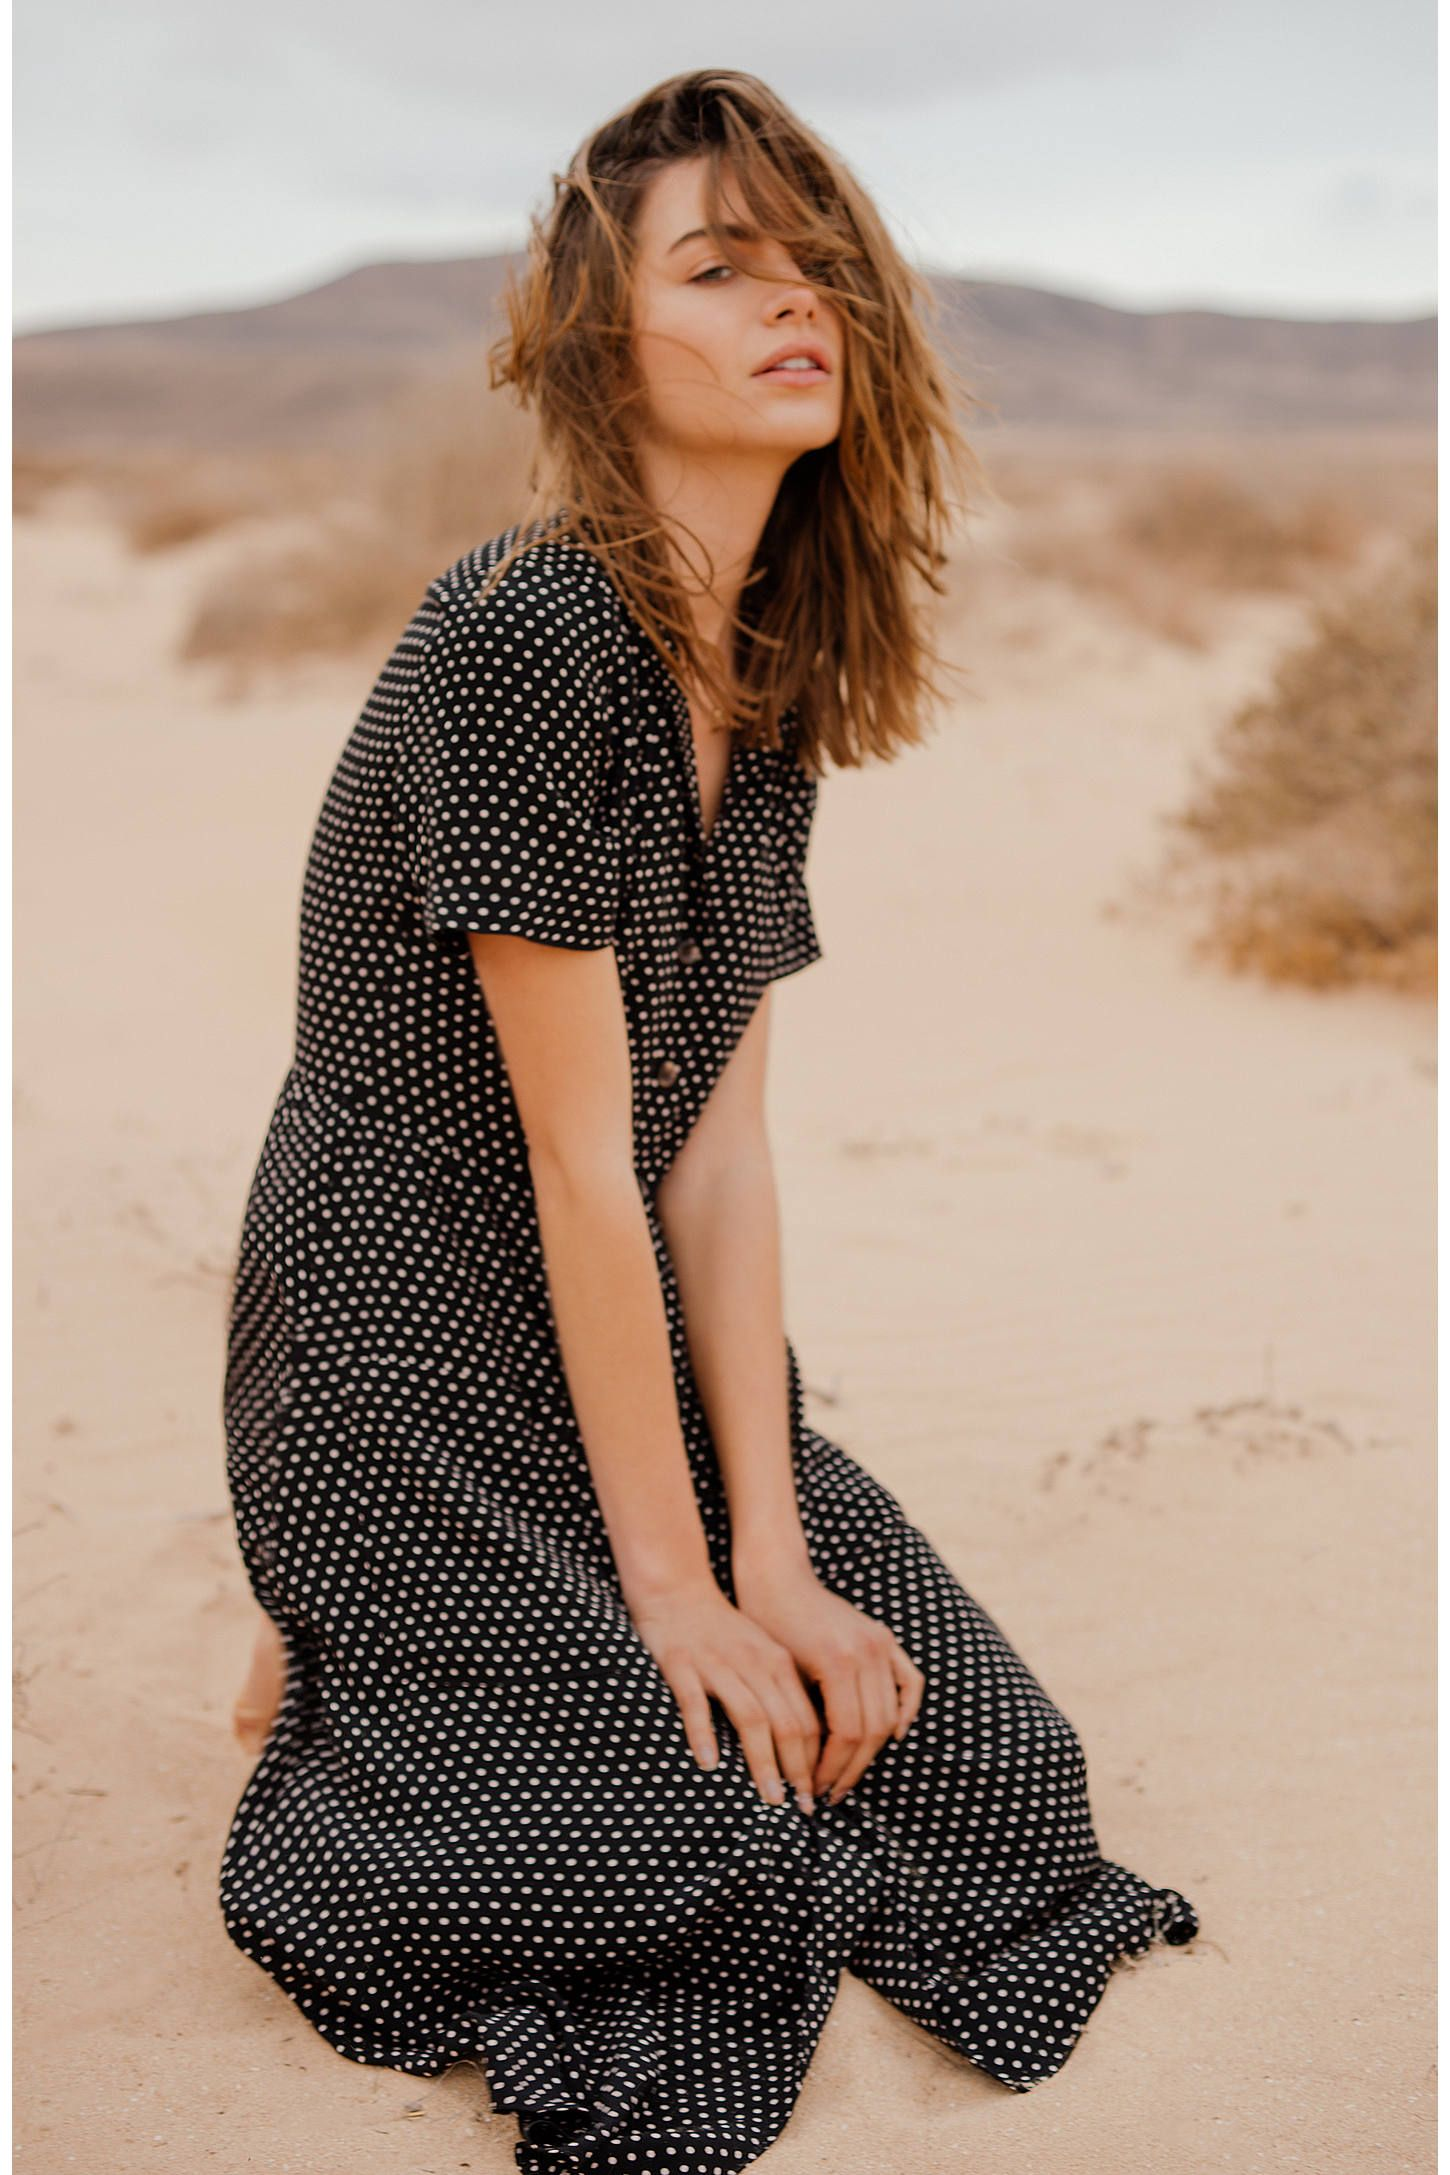 Pins And Needles Clothing Shop Pins & Needles Polka Dot Midi Shirt Dress At Urban Outfitters